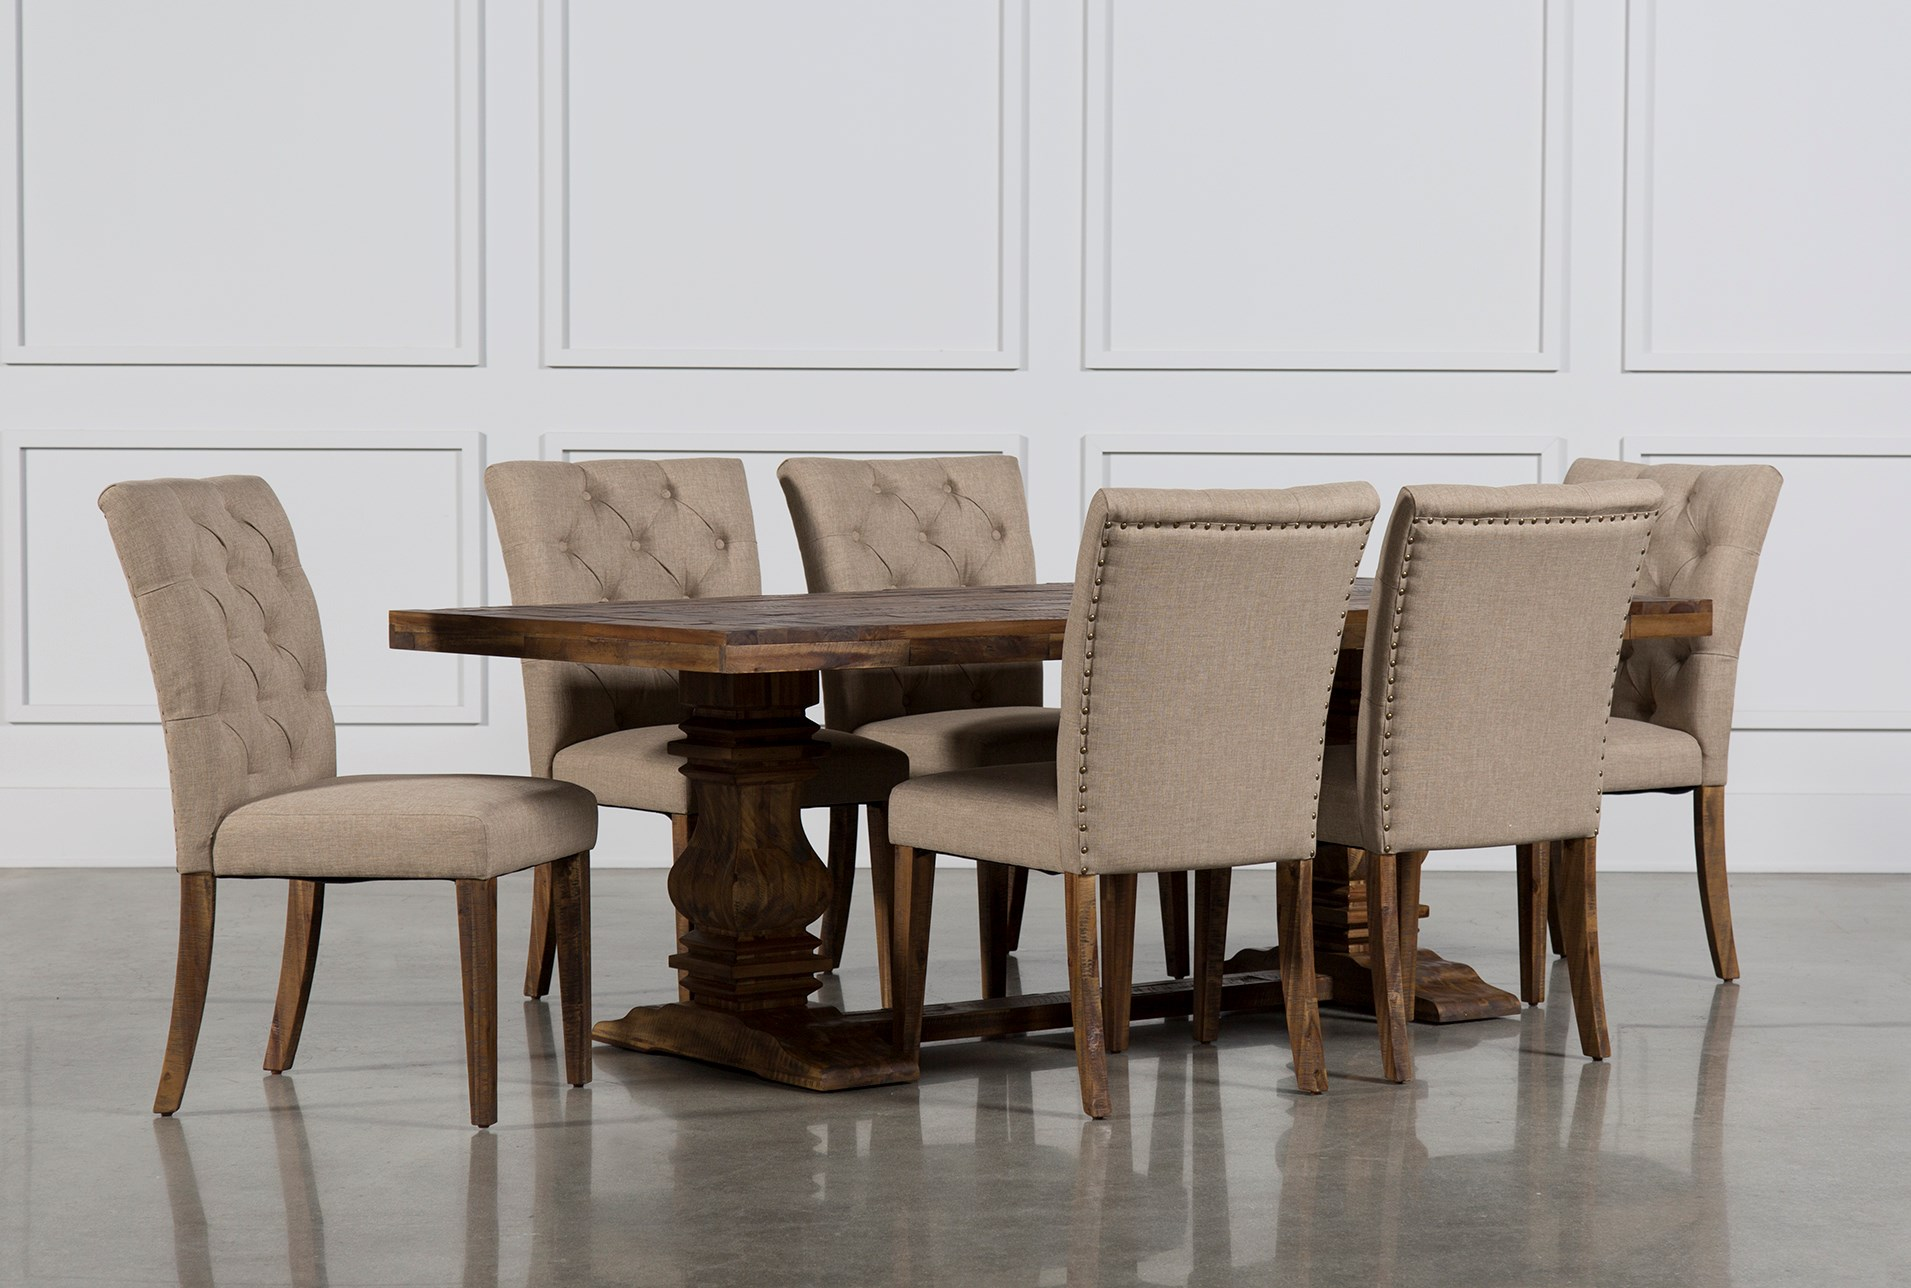 7 piece dining set with leaf upholstered partridge piece dining set qty 1 has been successfully added to your cart living spaces